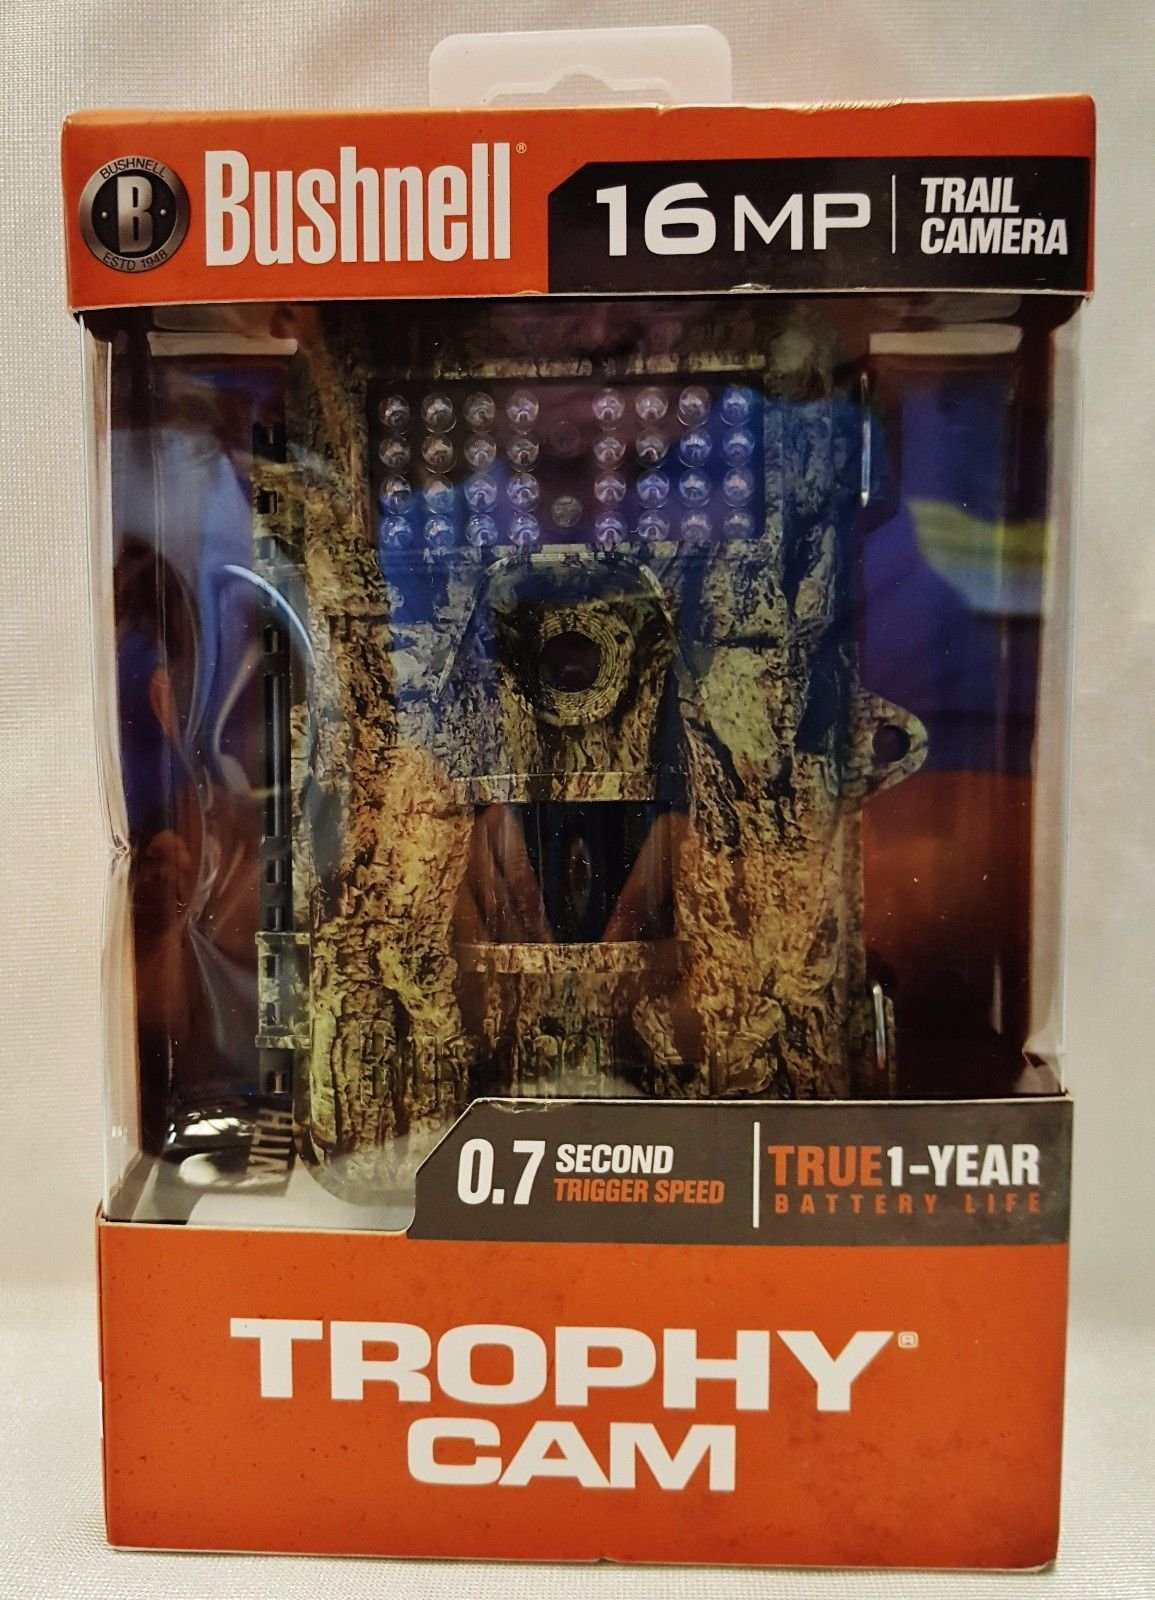 Bushnell 119716cw 16mp Trophy Cam Low Glow Trail Camera